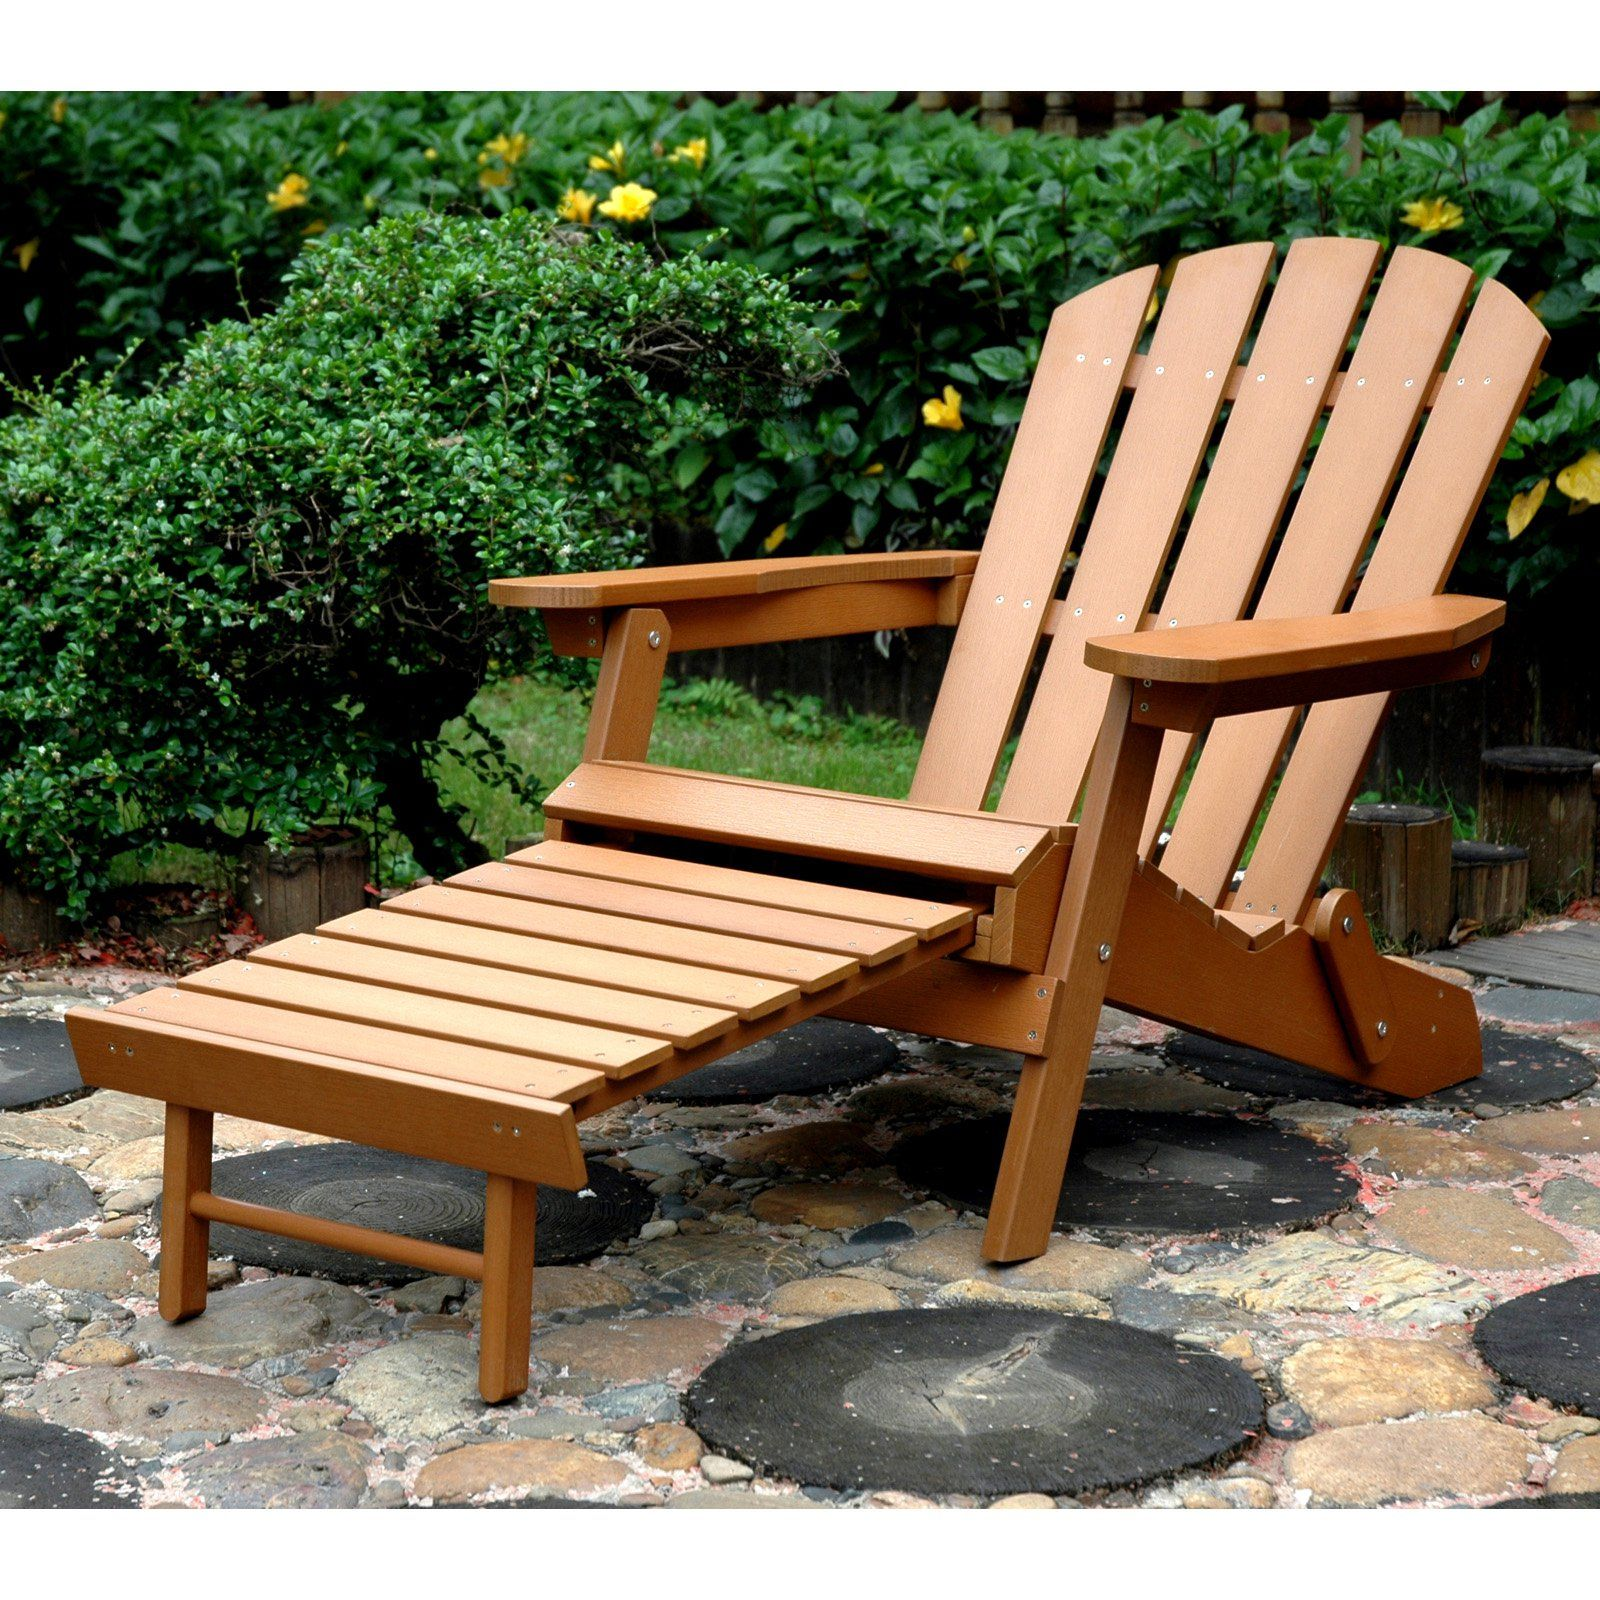 Merry Products Plastic Wood Folding Adirondack Chair With Ottoman Www Hayneedle Com Wood Adirondack Chairs Adirondack Chair Folding Adirondack Chairs Plastic adirondack chairs with ottoman